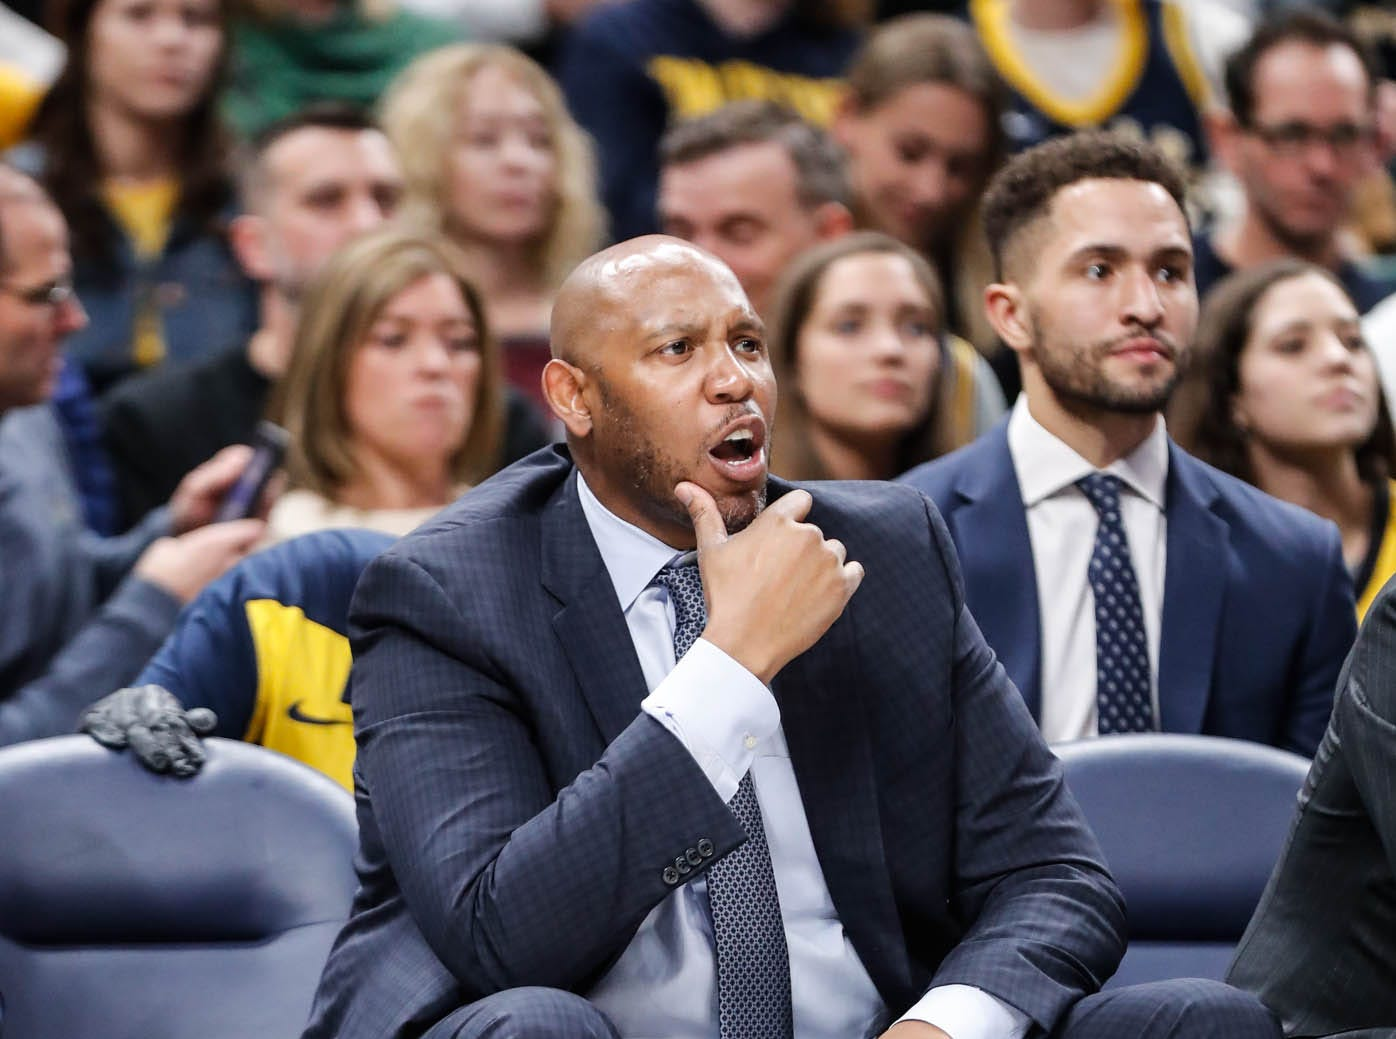 Pacers Assistant coach Popeye Jones reacts to a call during a game between the Indiana Pacers and the Detroit Pistons at at Bankers Life Fieldhouse in Indianapolis on Friday, Dec. 28, 2018.